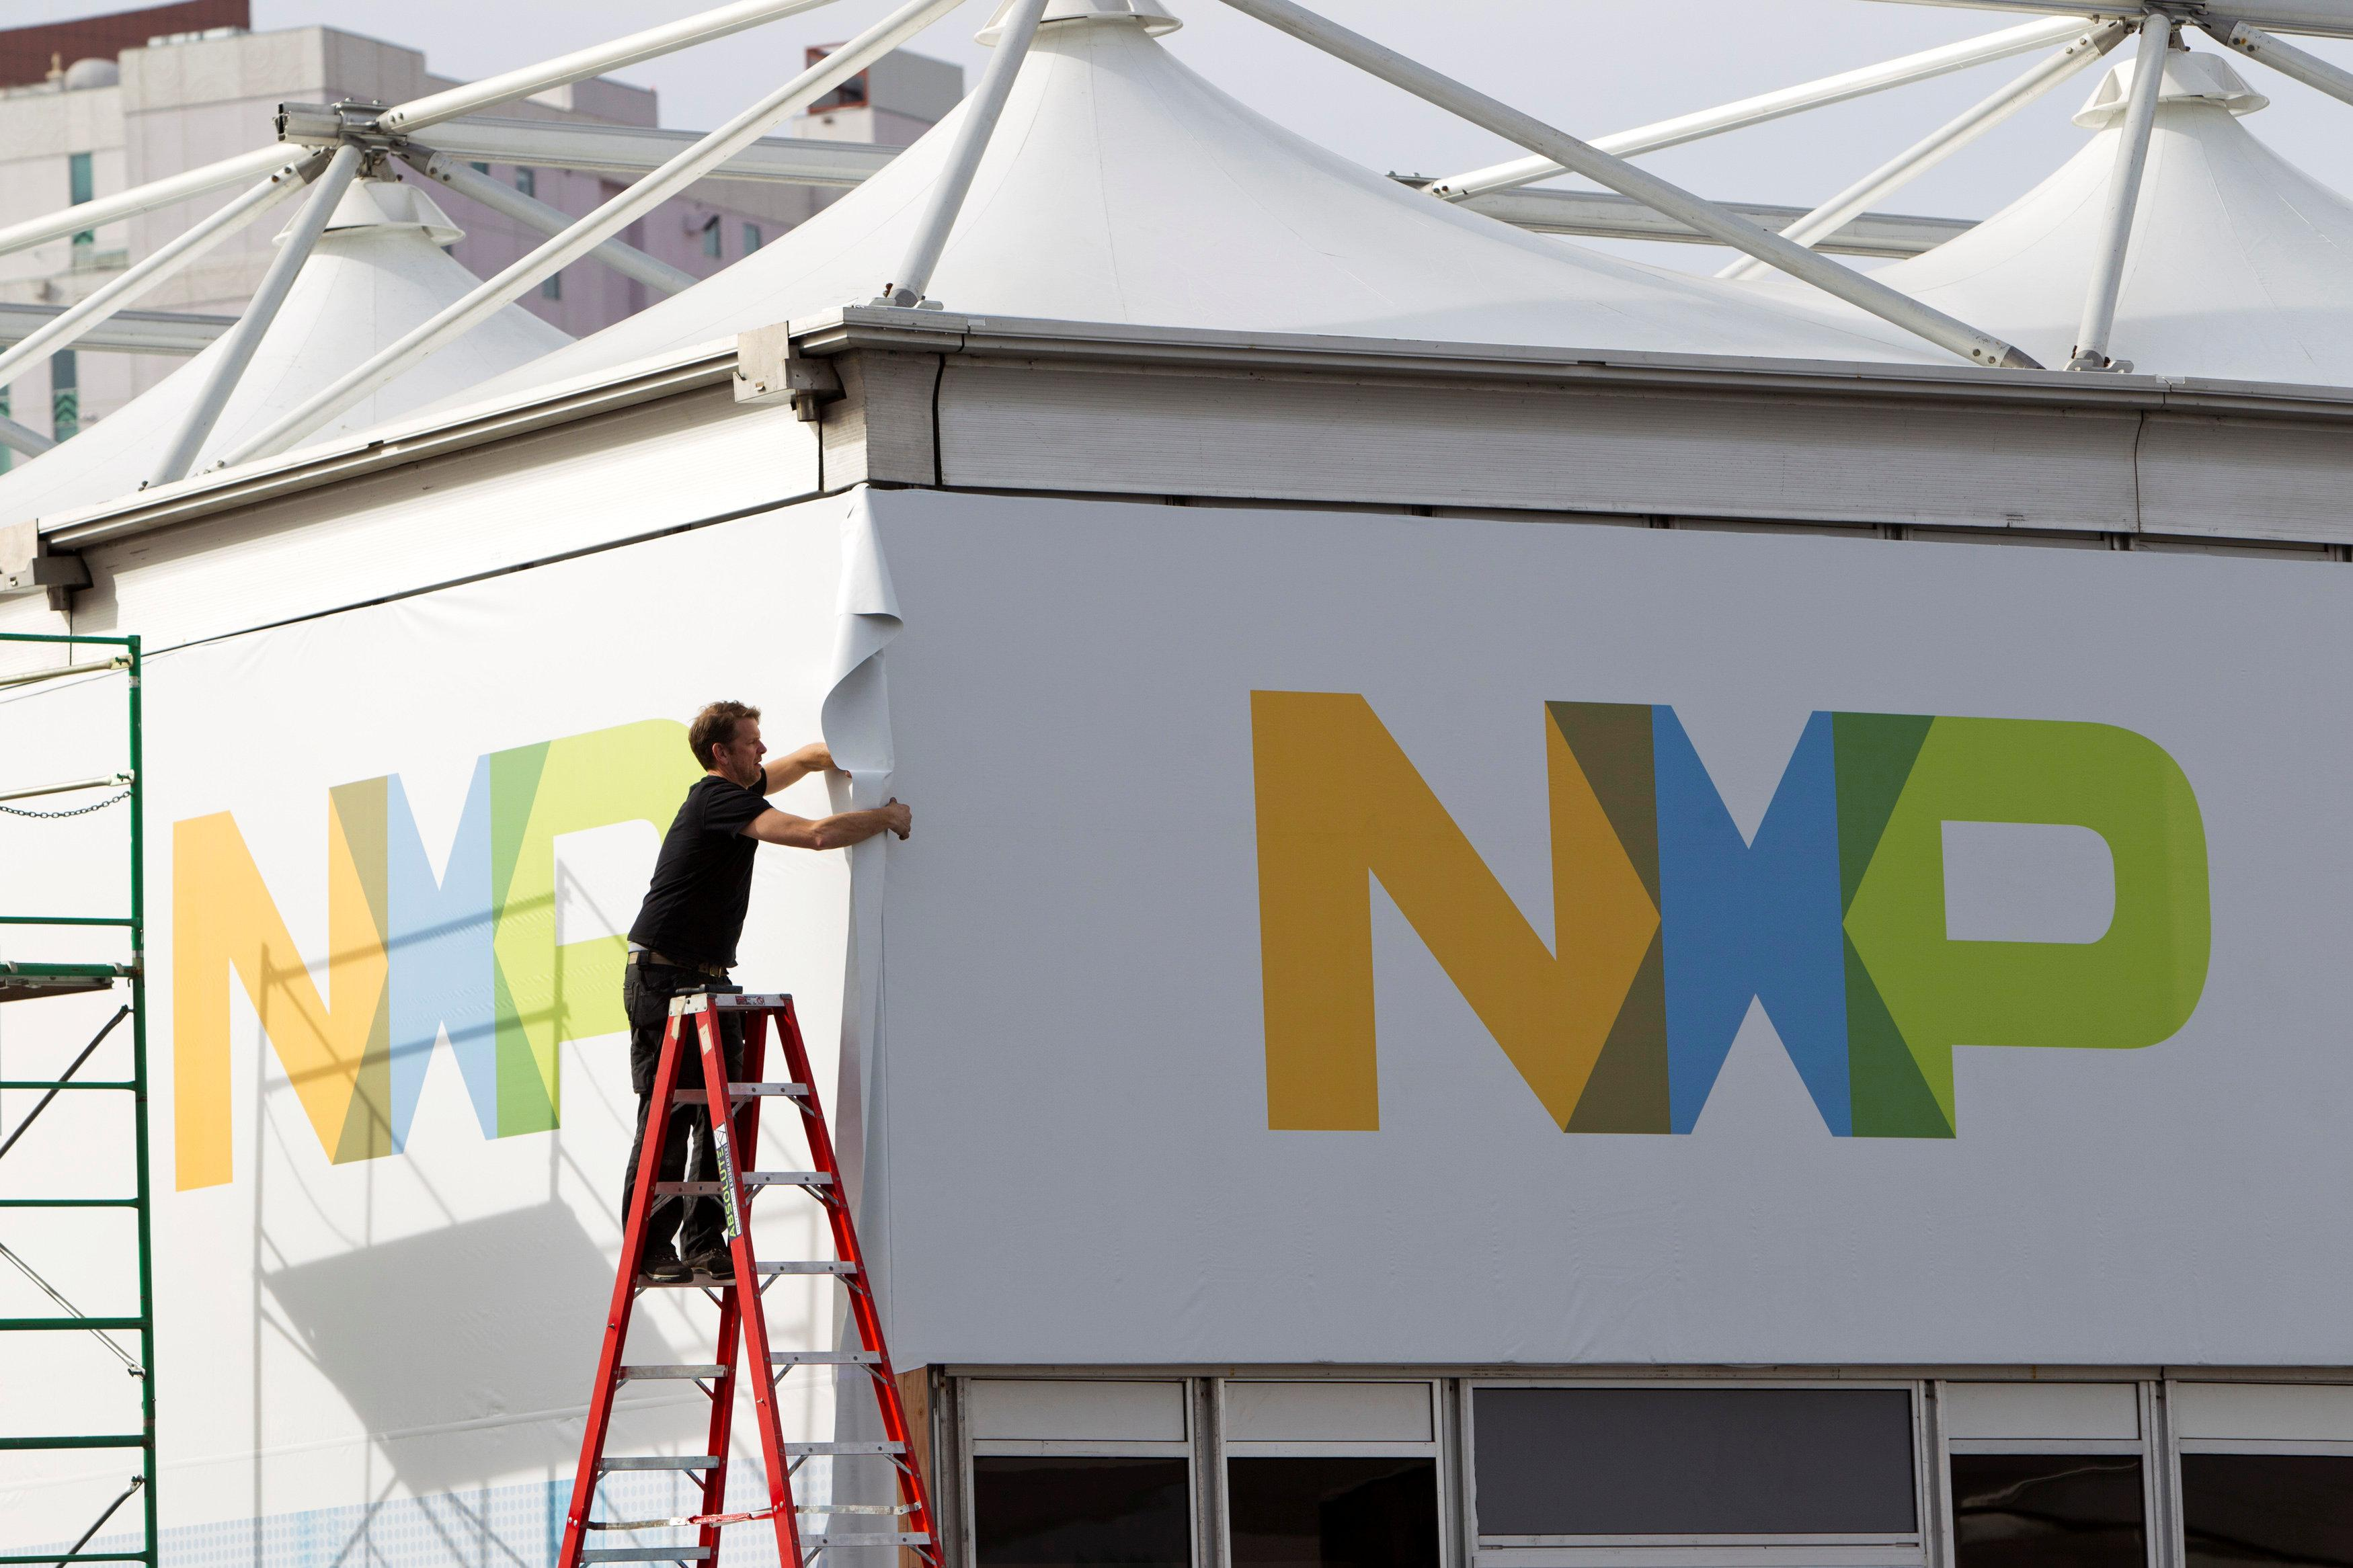 A man works on a tent for NXP Semiconductors in preparation for the 2015 International Consumer Electronics Show (CES) at Las Vegas Convention Center in Las Vegas, Nevada, U.S. January 4, 2015. Steve Marcus